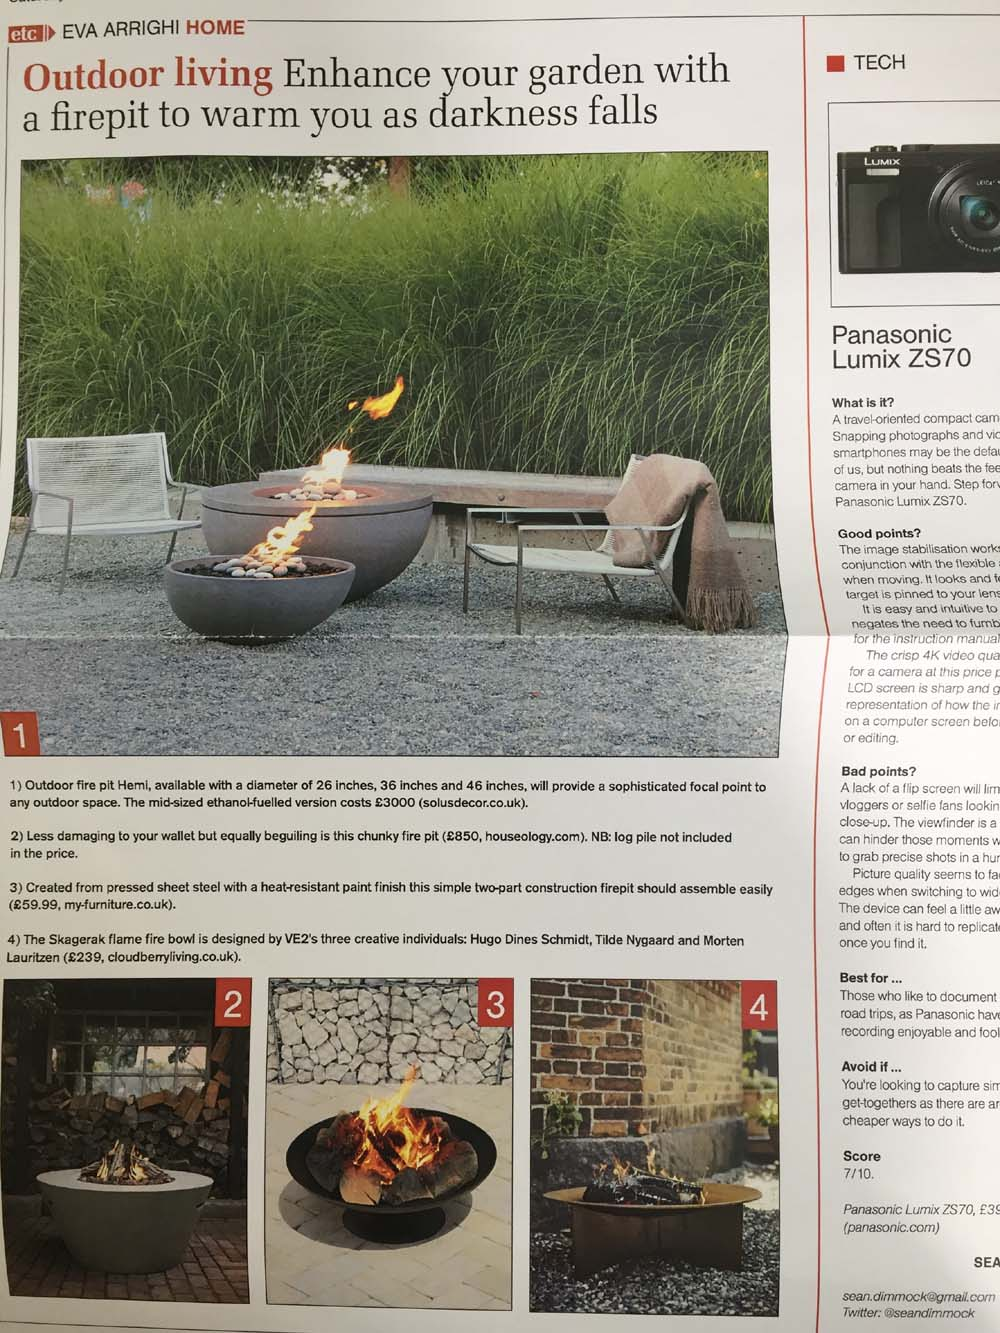 The Herald Newspaper, Glasgow story about Solus Fire pits, May 2017